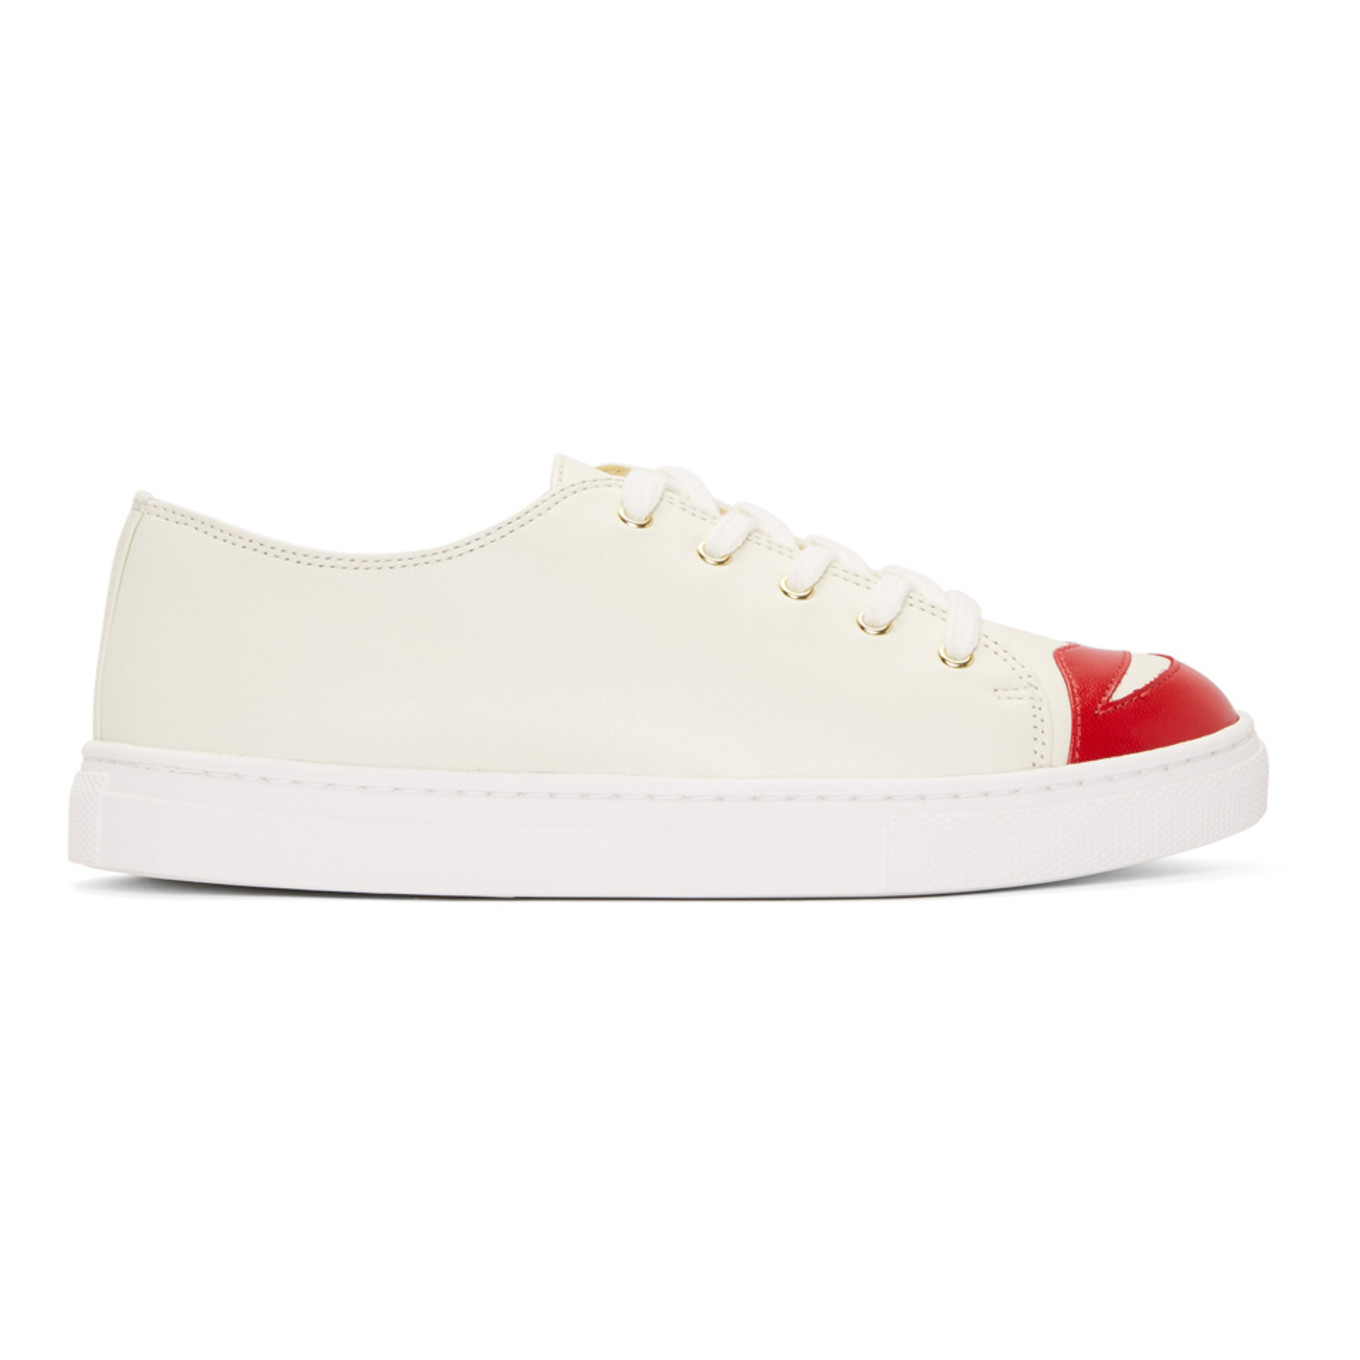 White Kiss Me Sneakers by Charlotte Olympia